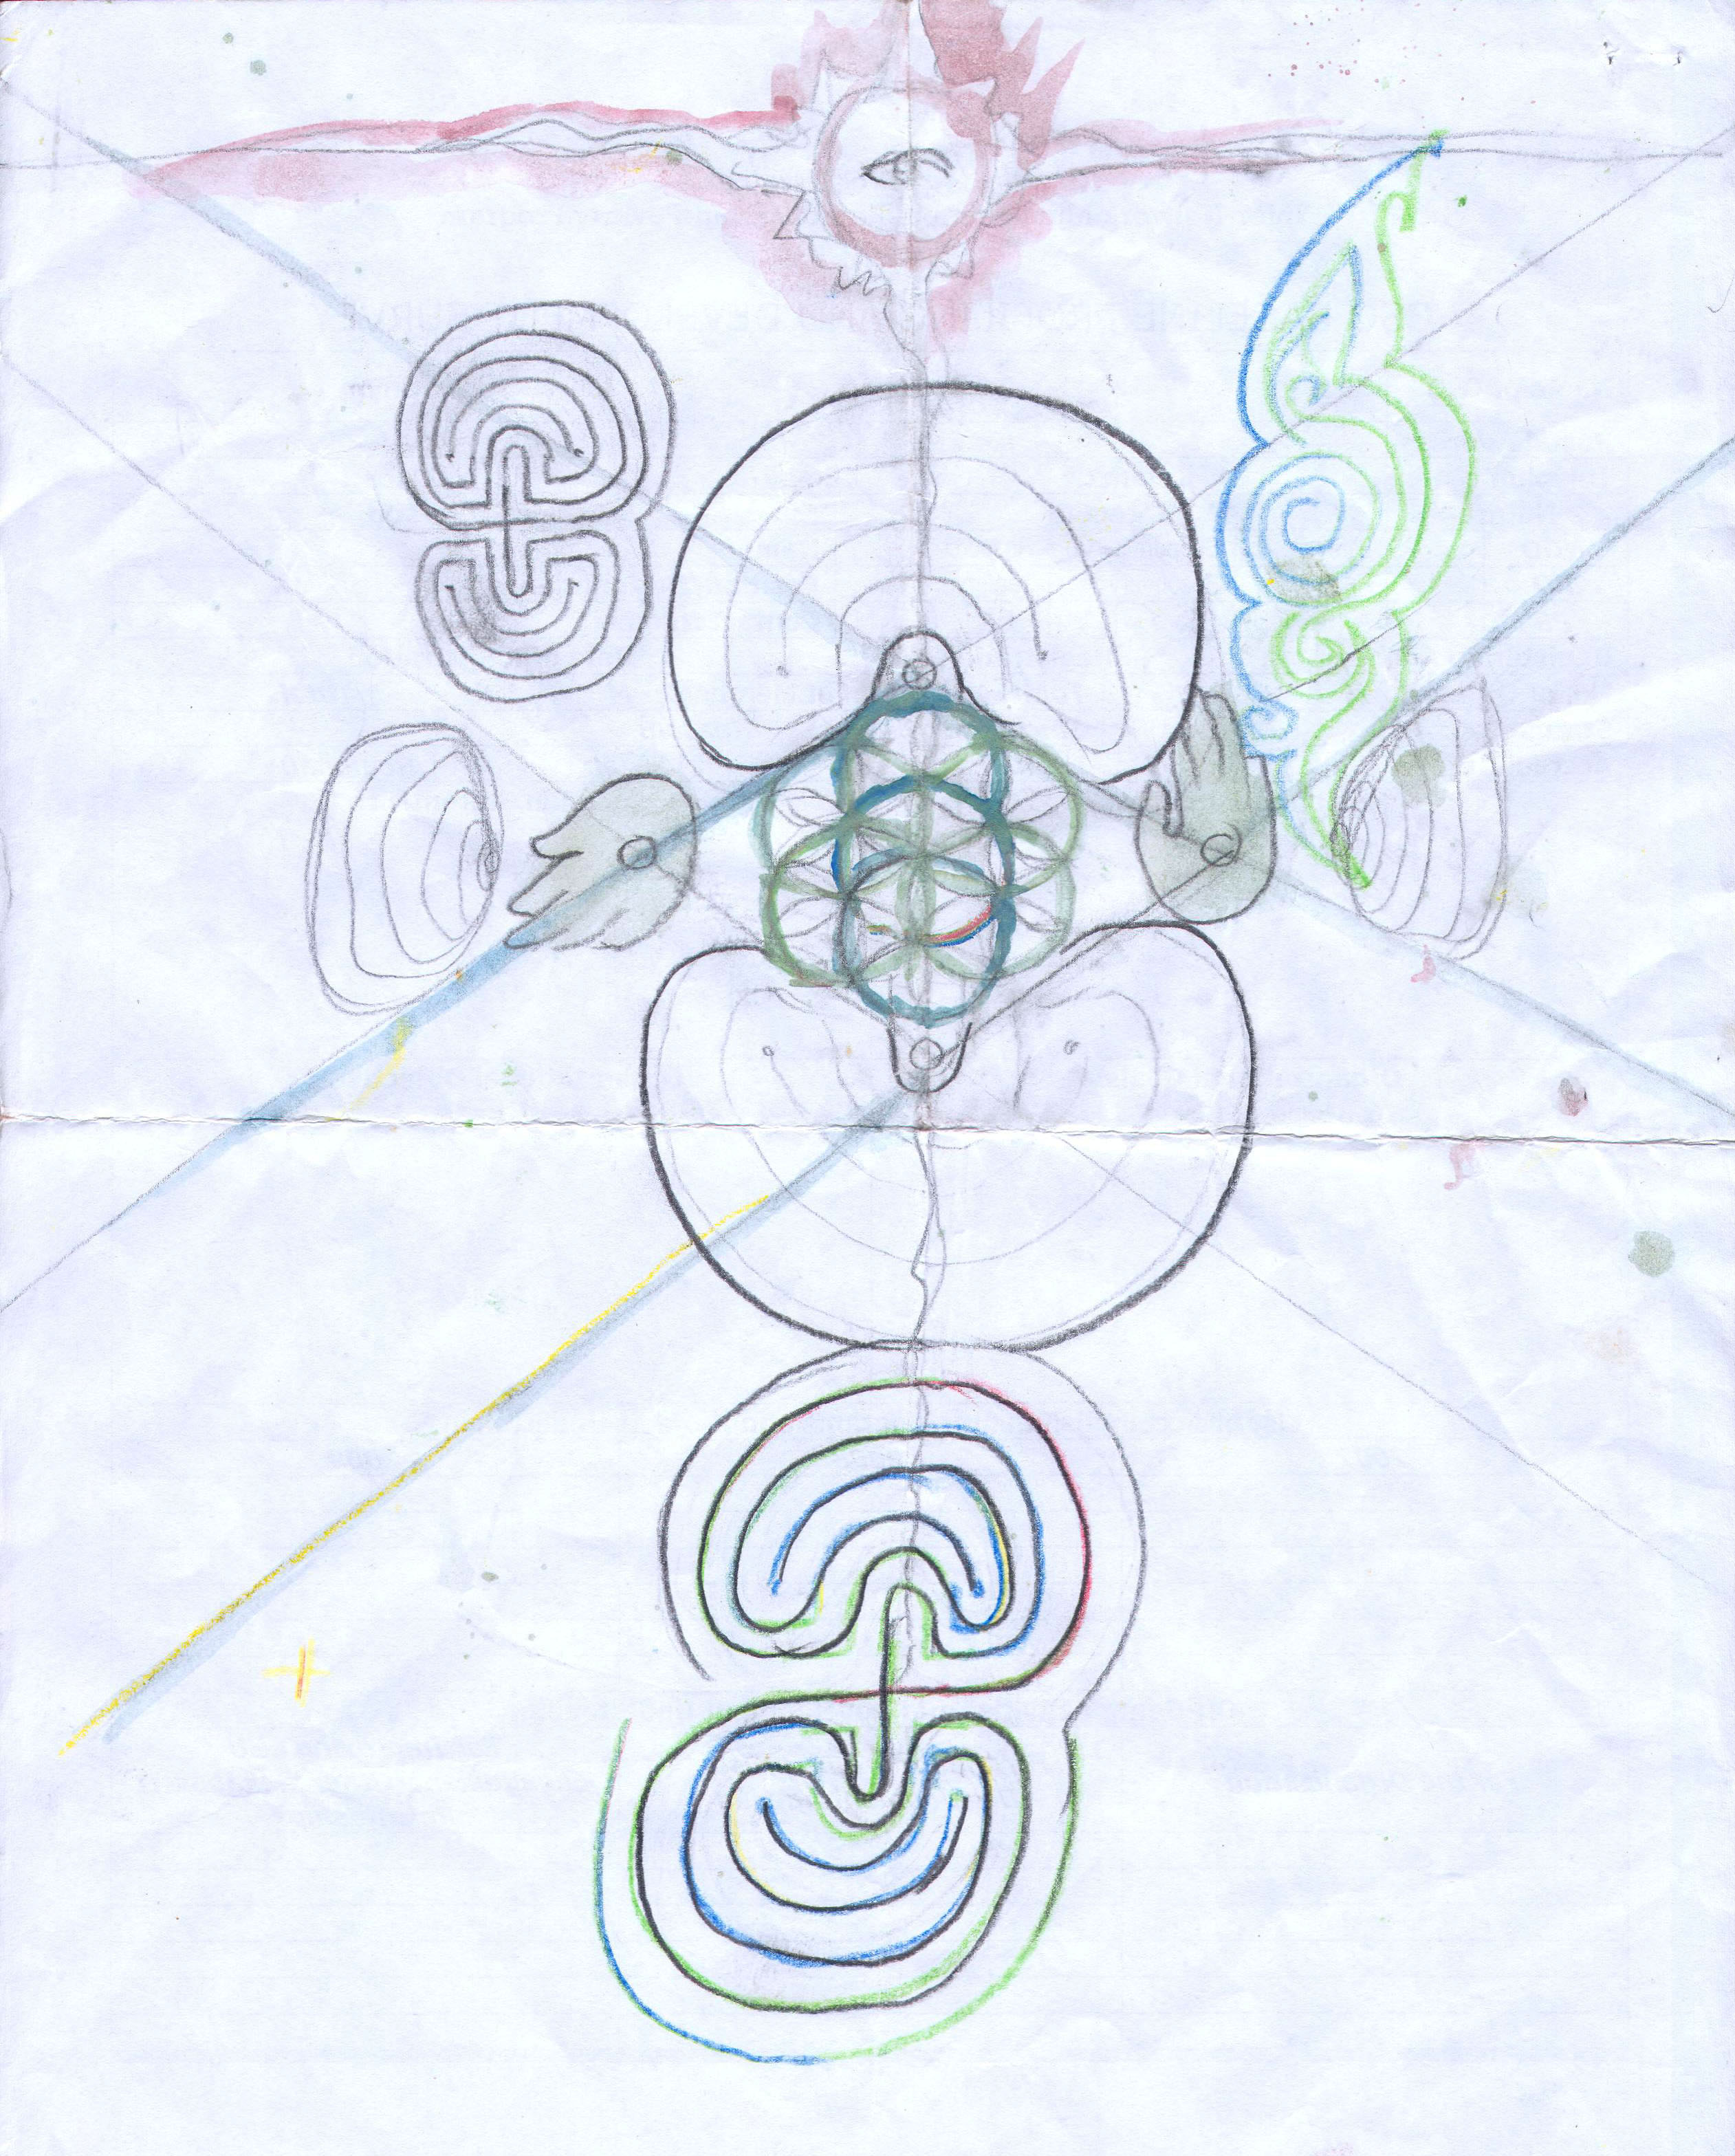 Sketches from the source by a Philippine shaman Bong Delatorre 01